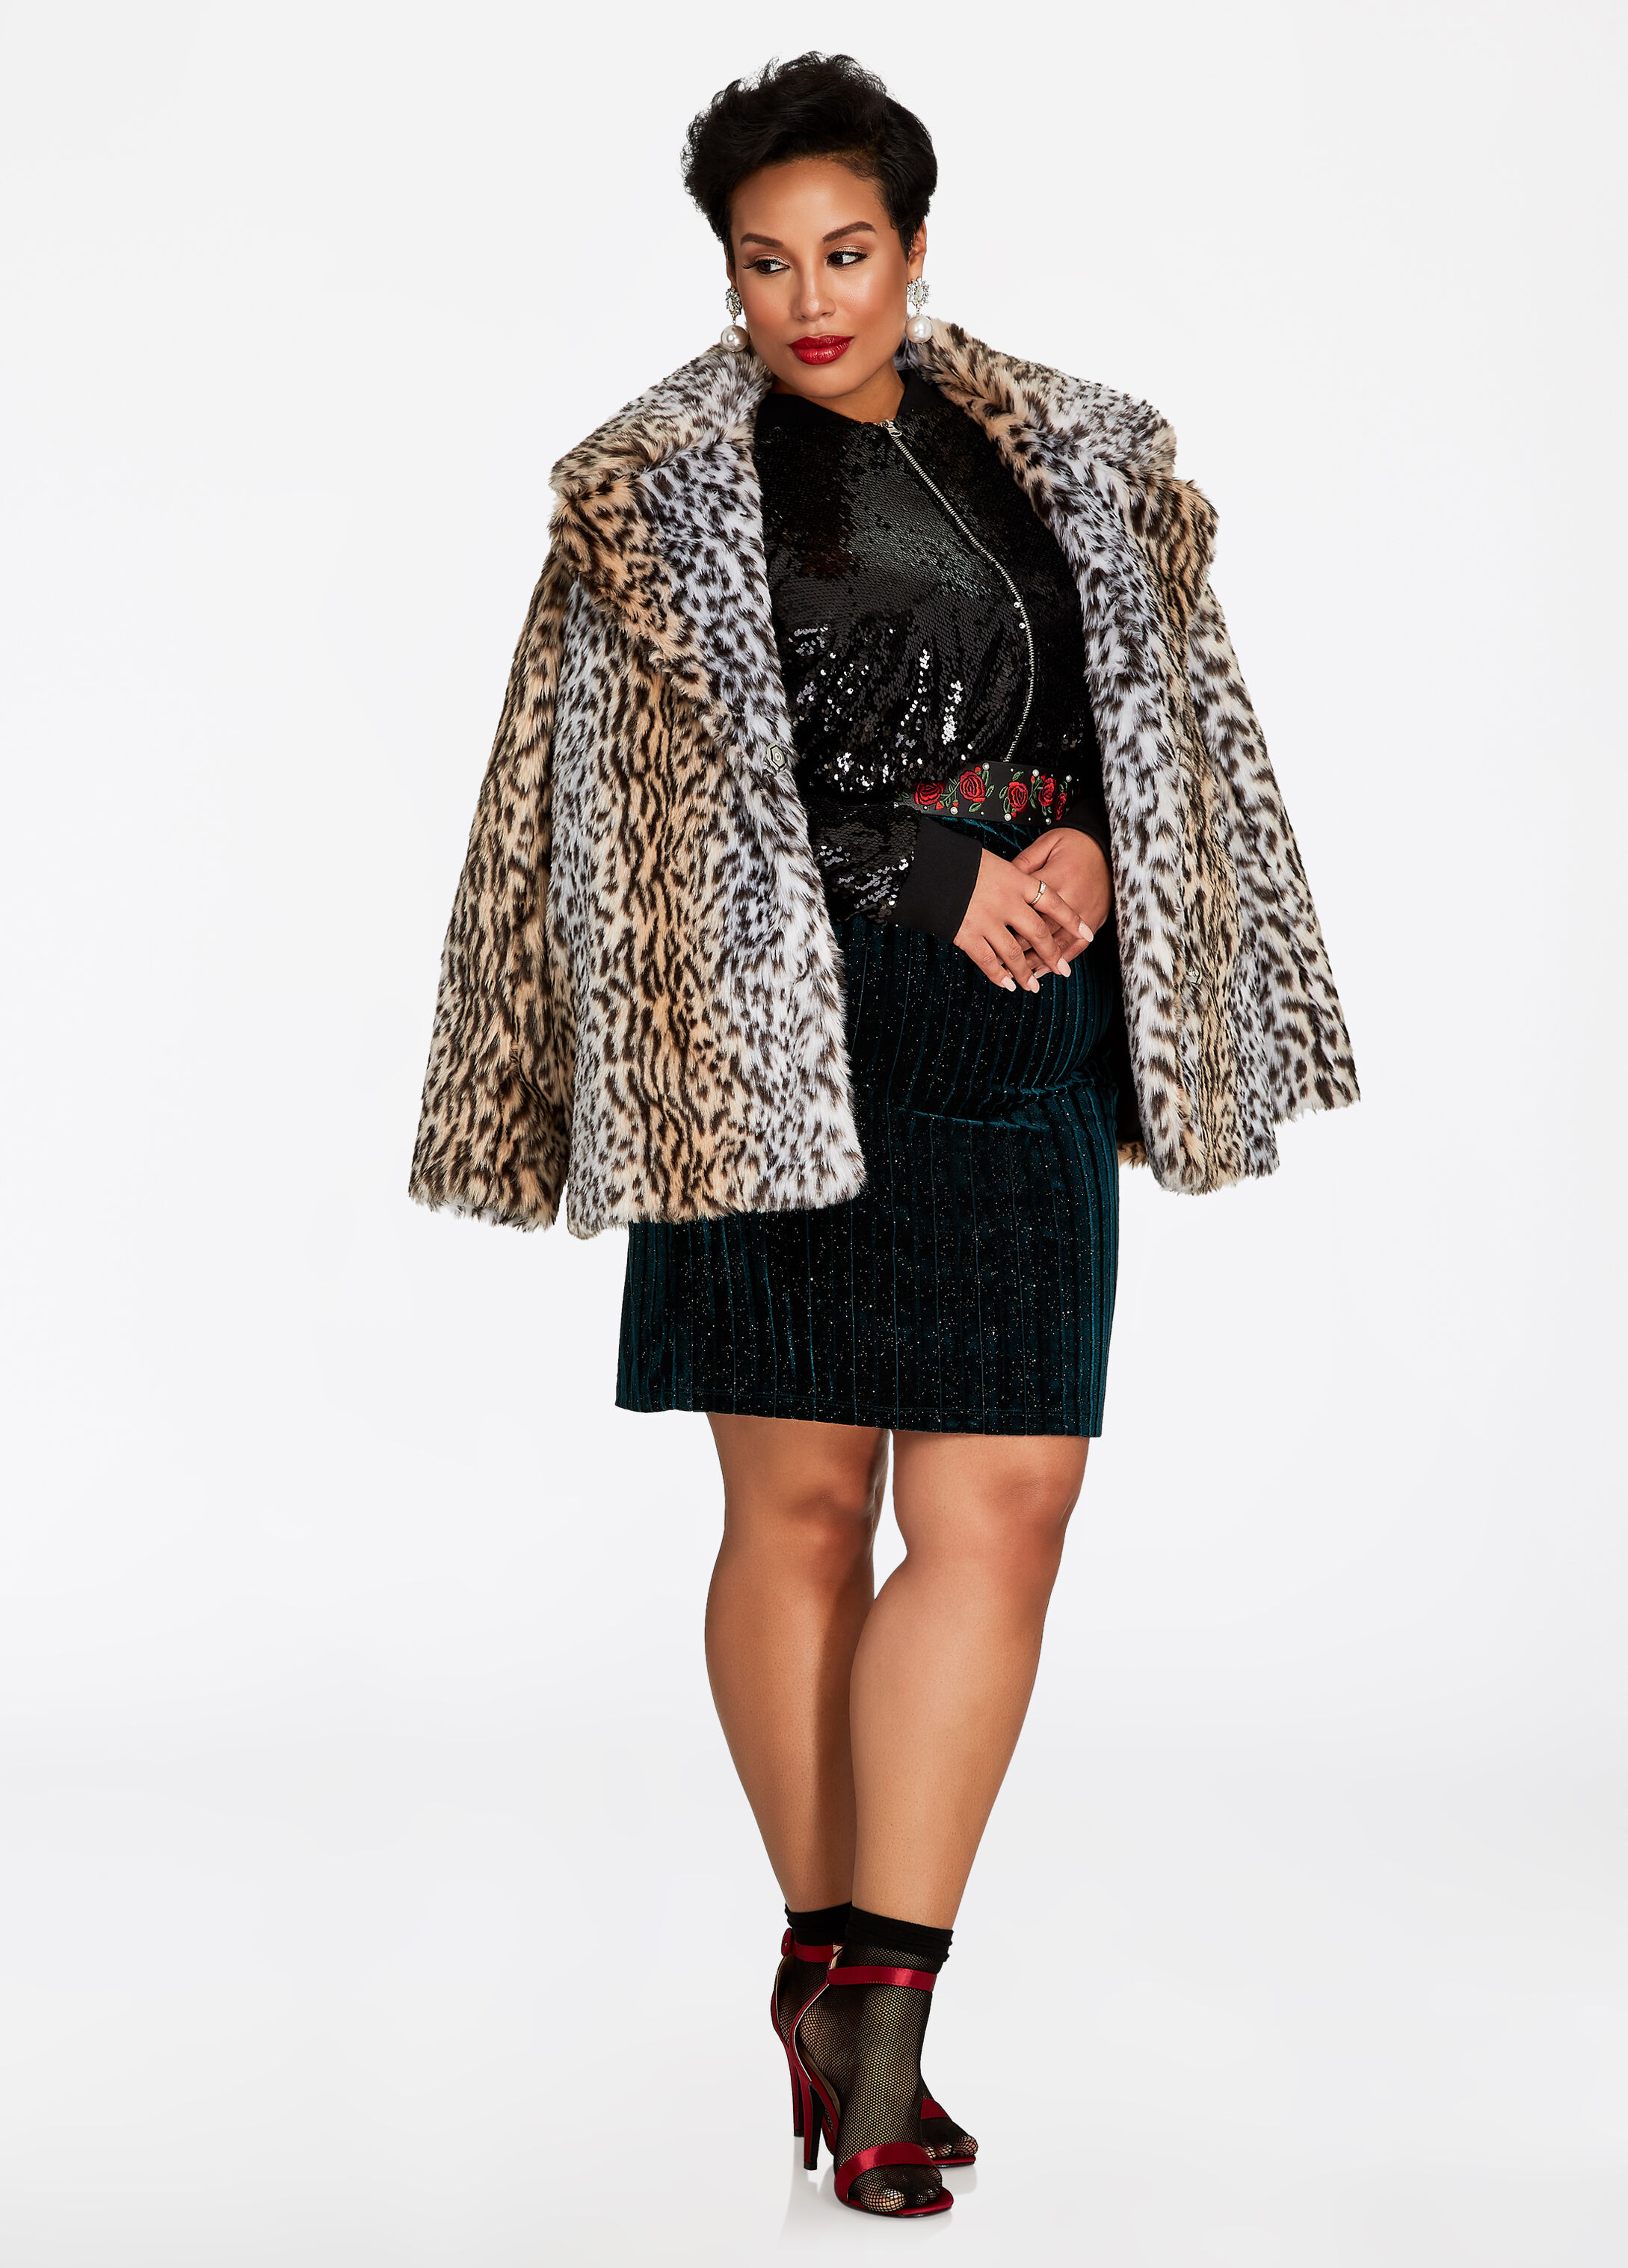 Plus Size Outfits - Cheetah Coat with Sequin Bomber and Velvet Dress